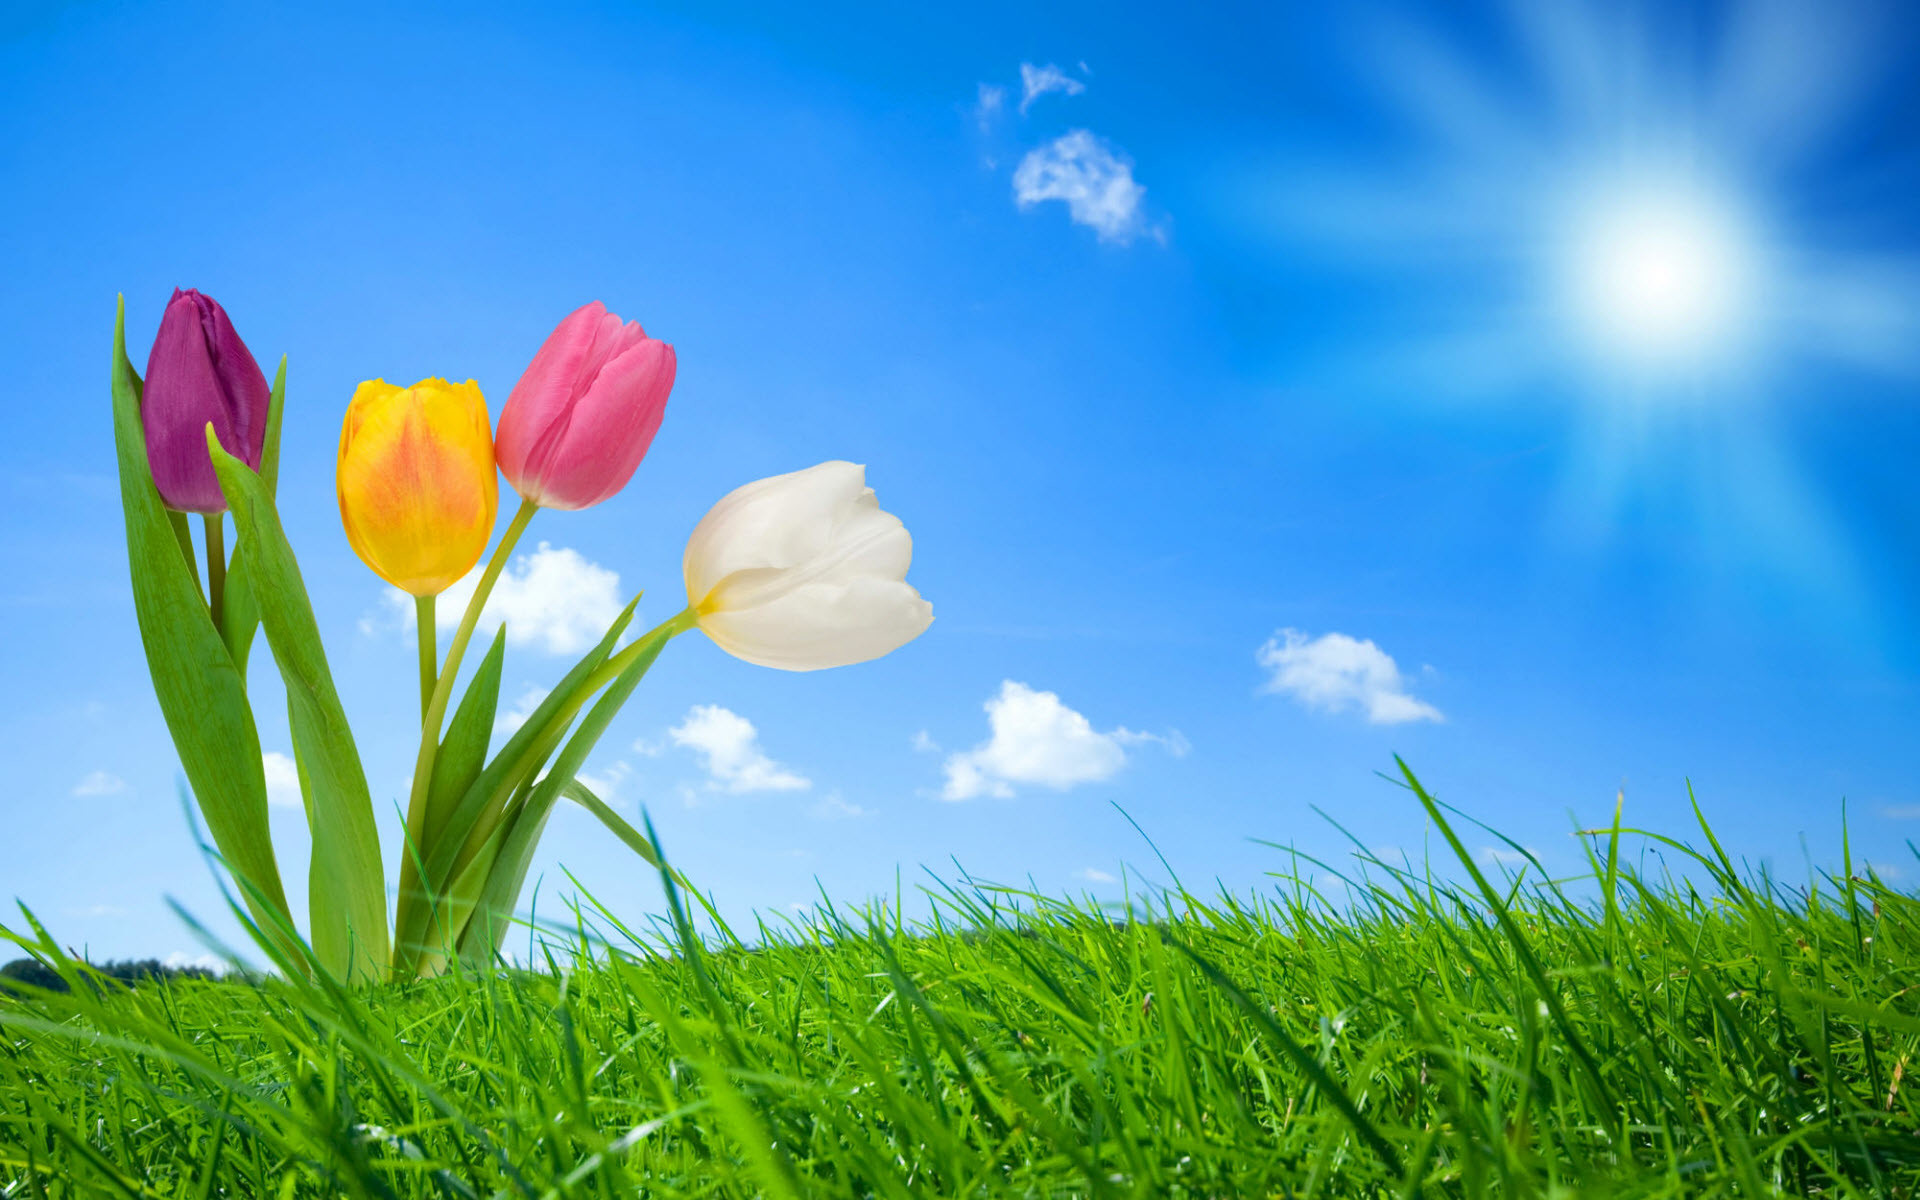 Free Spring Wallpaper Backgrounds   2012 Nature Wallpapers. All images are  copyrighted by their .